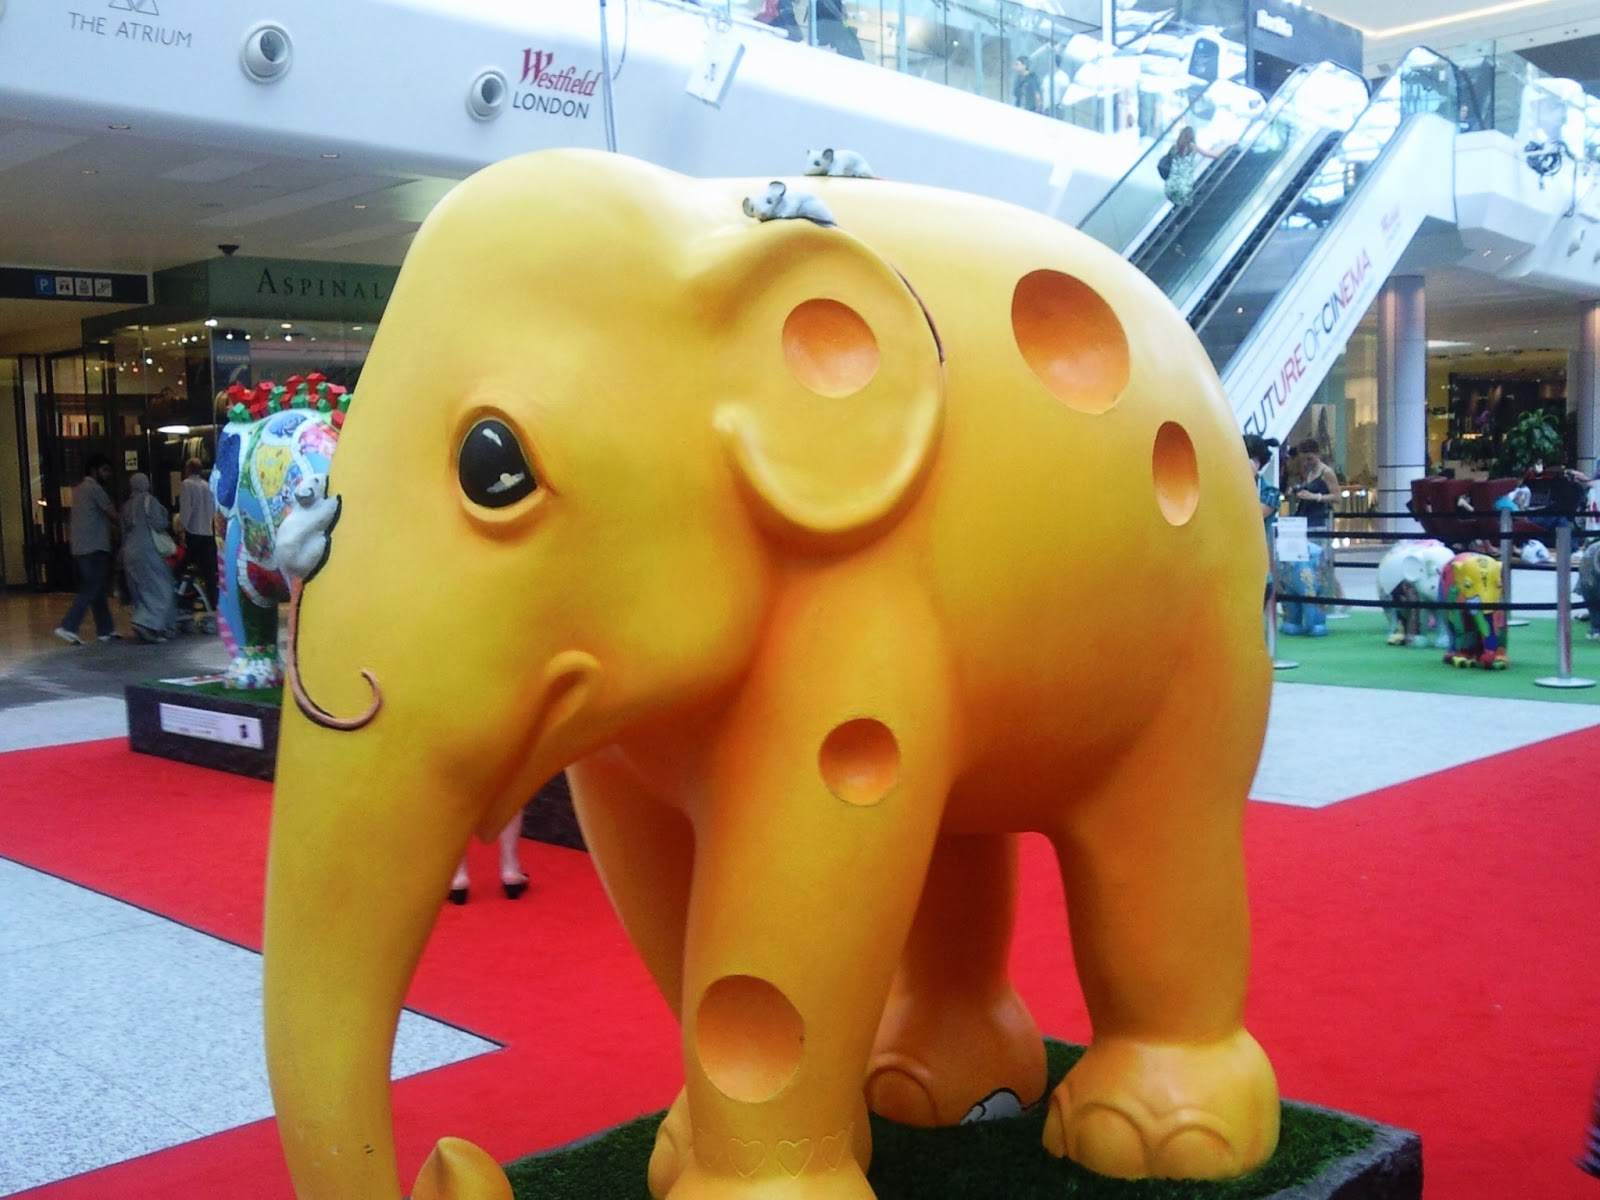 A Piece of Cheese in Westfield London